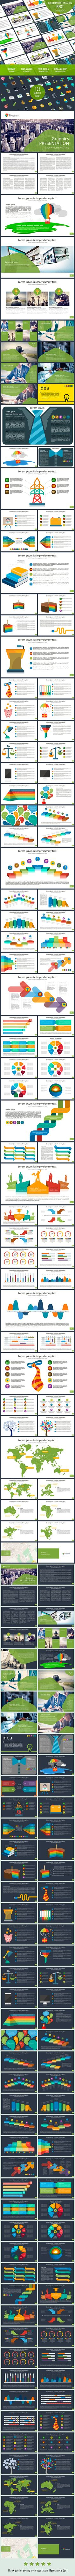 Freedom PowerPoint template #design #slides Download: http://graphicriver.net/item/freedom-powerpoint-template/10916311?ref=ksioks